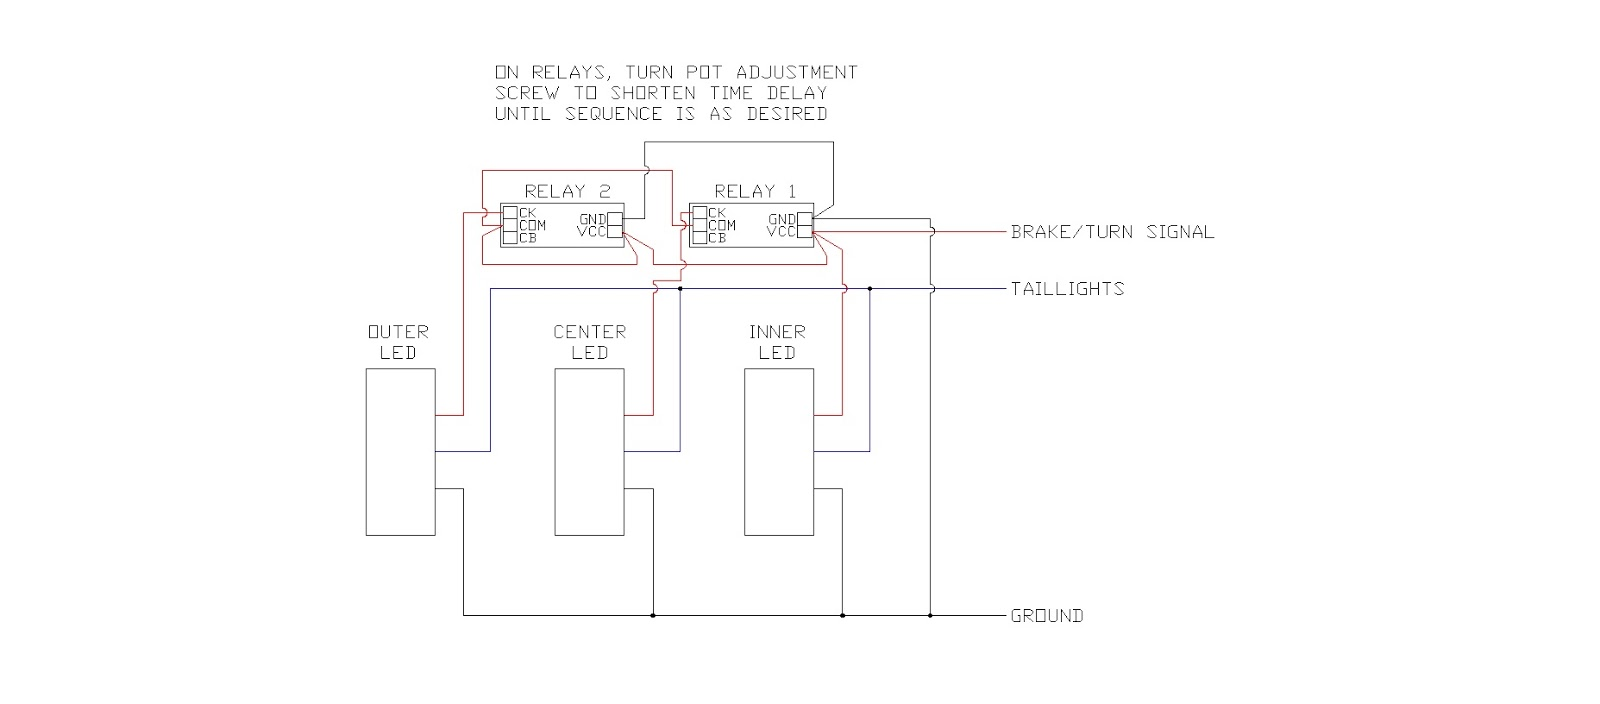 wiring diagram for motorcycle turn signals electric trailer brake controller diy sequential led taillights (under $30) - vintage mustang forums